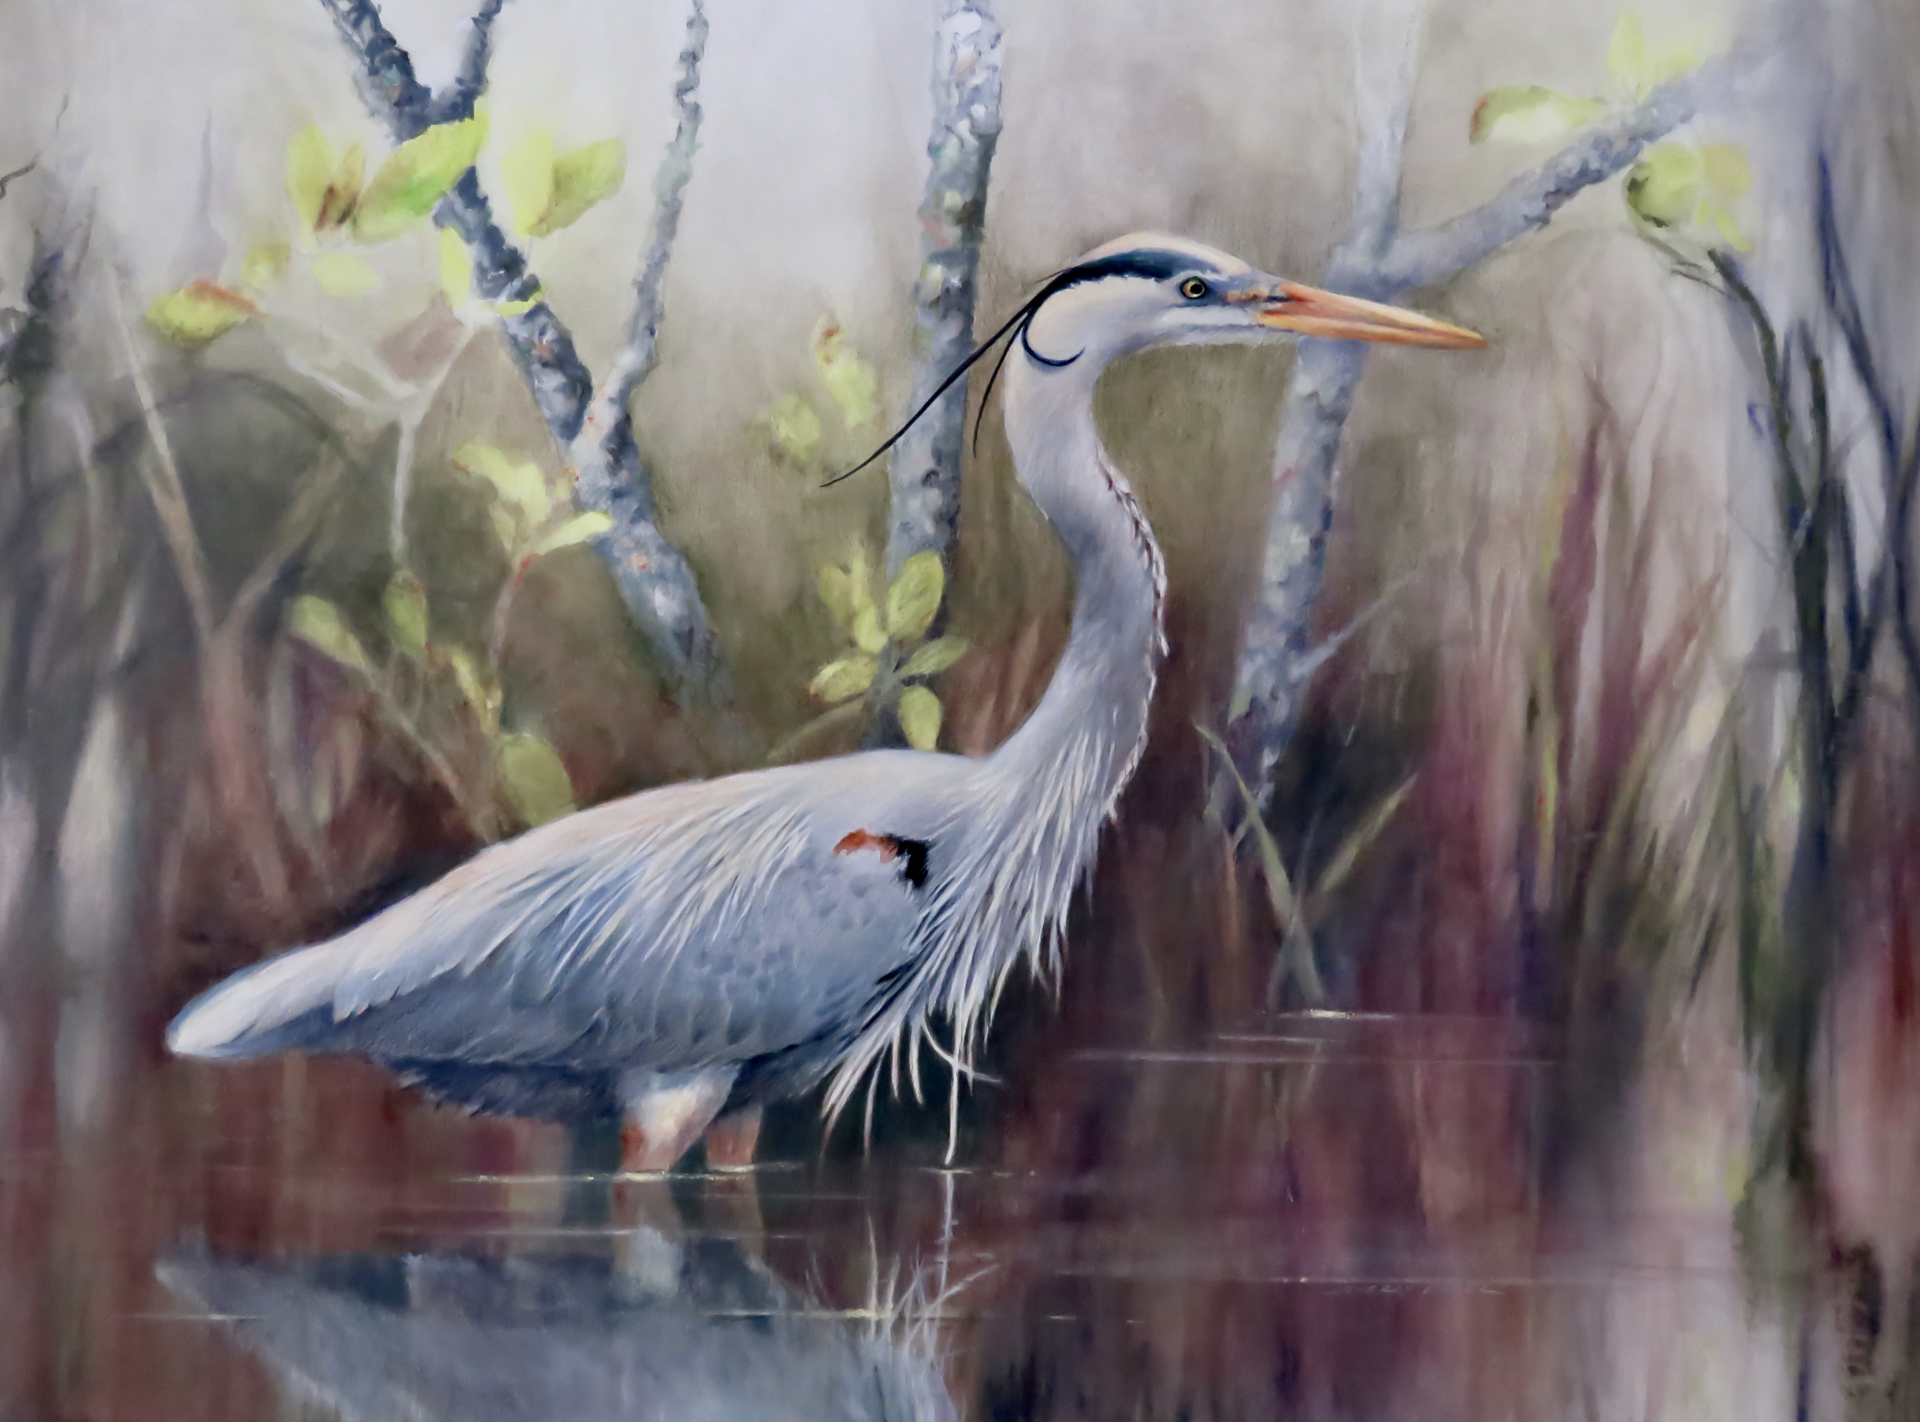 Great Blue Heron in Breeding Plumage by Sherry Egger